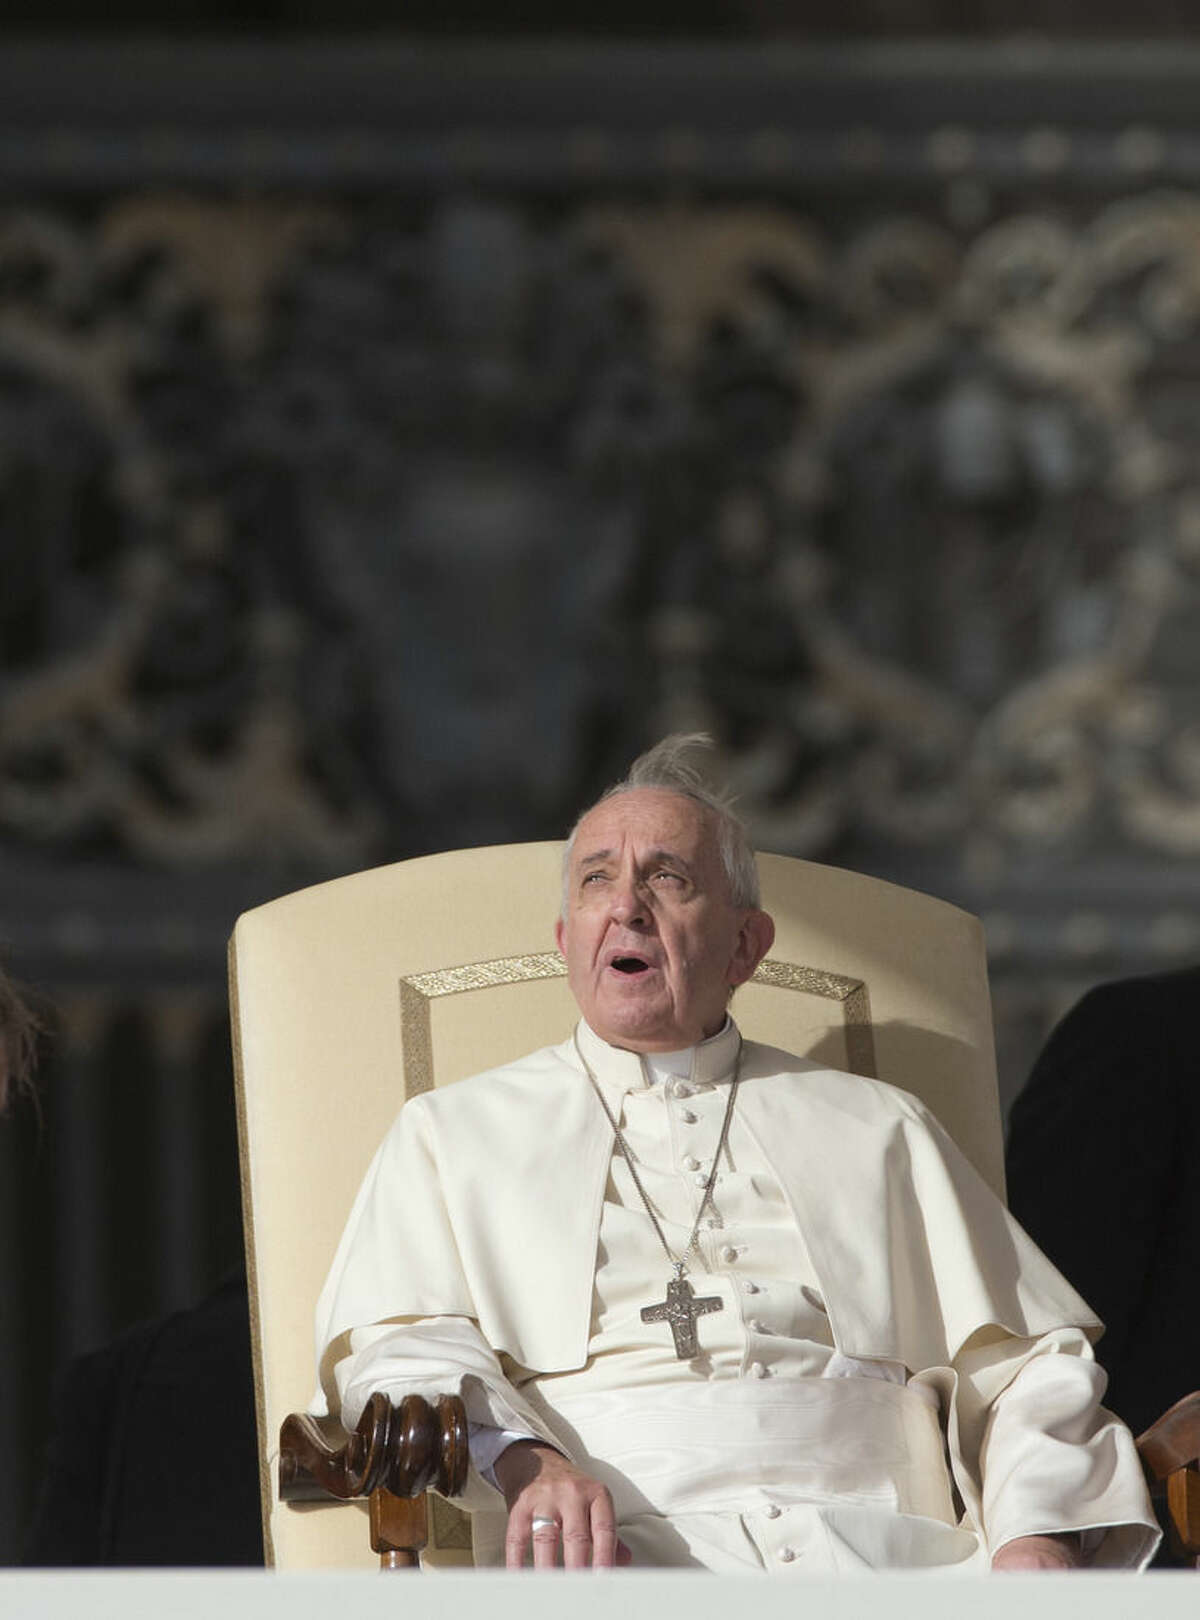 Pope Francis looks up as he arrives for his weekly general audience in St. Peter's Square at the Vatican, Wednesday, Nov. 5, 2014. (AP Photo/Alessandra Tarantino)